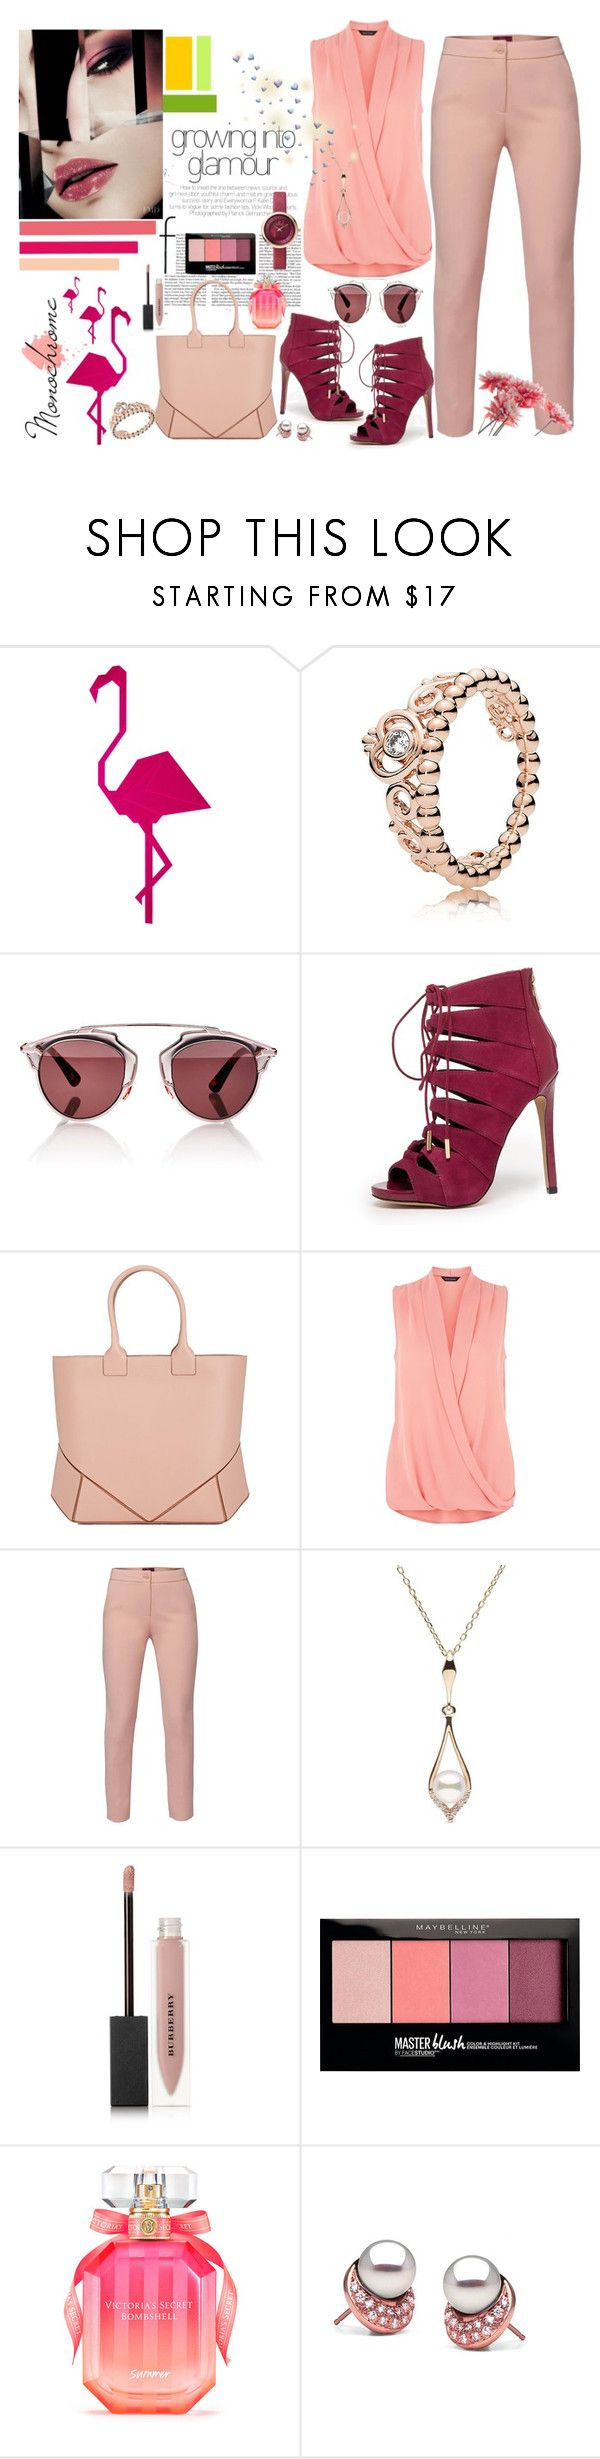 """""""Pink glamour"""" by miles1015 ❤ liked on Polyvore featuring Pandora, Christian Dior, Bebe, Givenchy, WtR, Burberry, Maybelline and Victoria's Secret"""